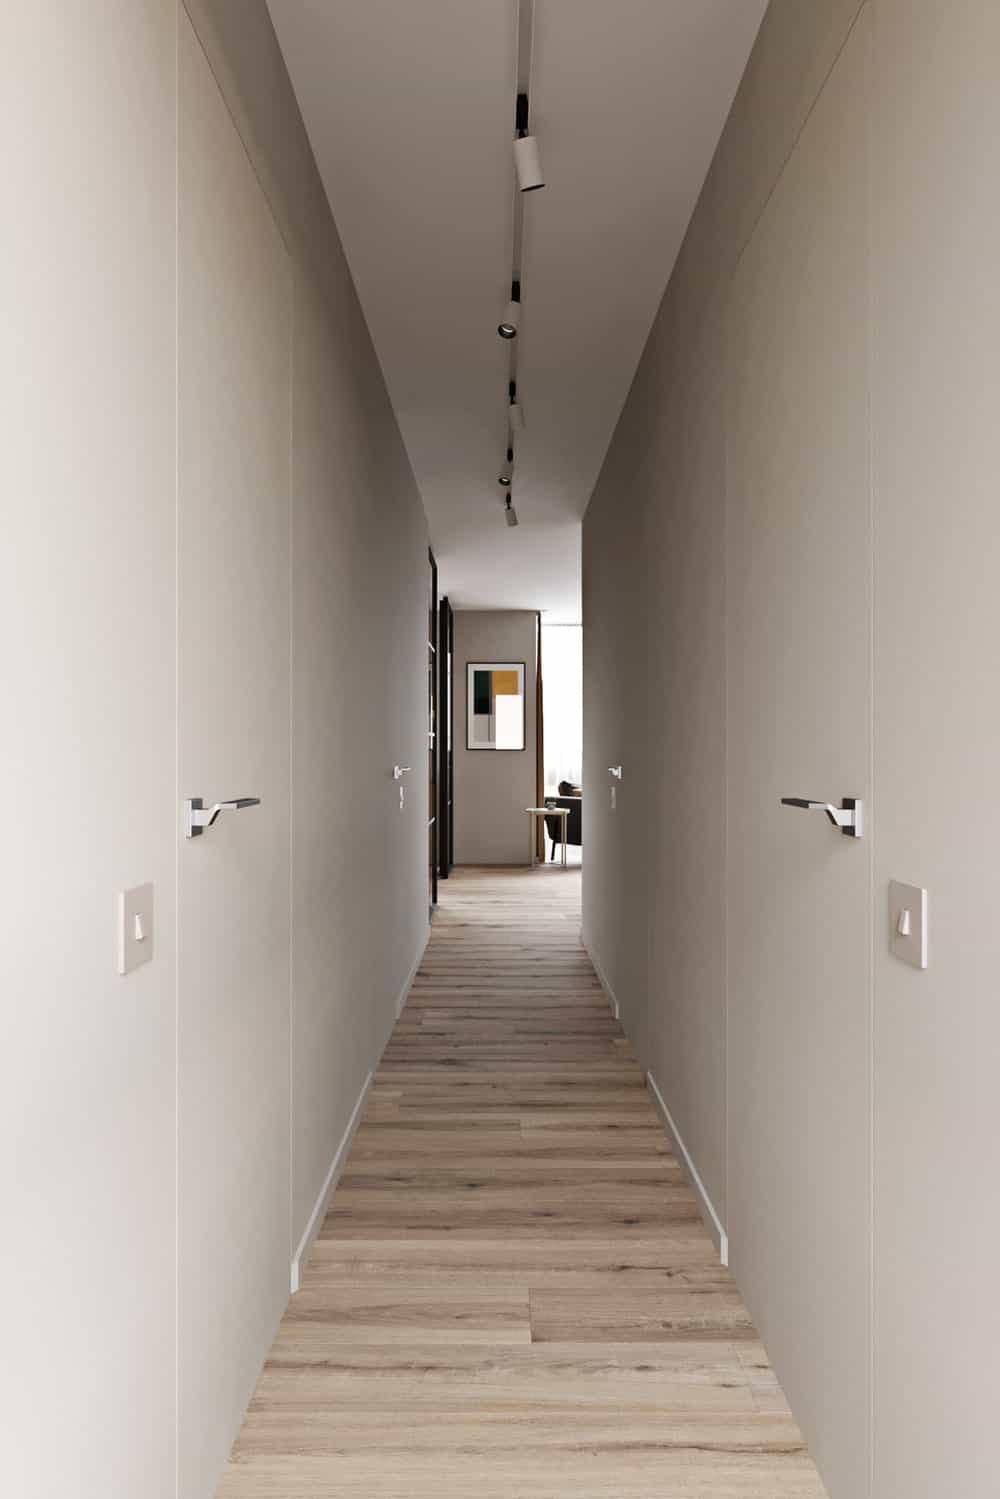 This is long and narrow hallway with a light hardwood flooring complemented by the light beige walls that blends well with the doors.